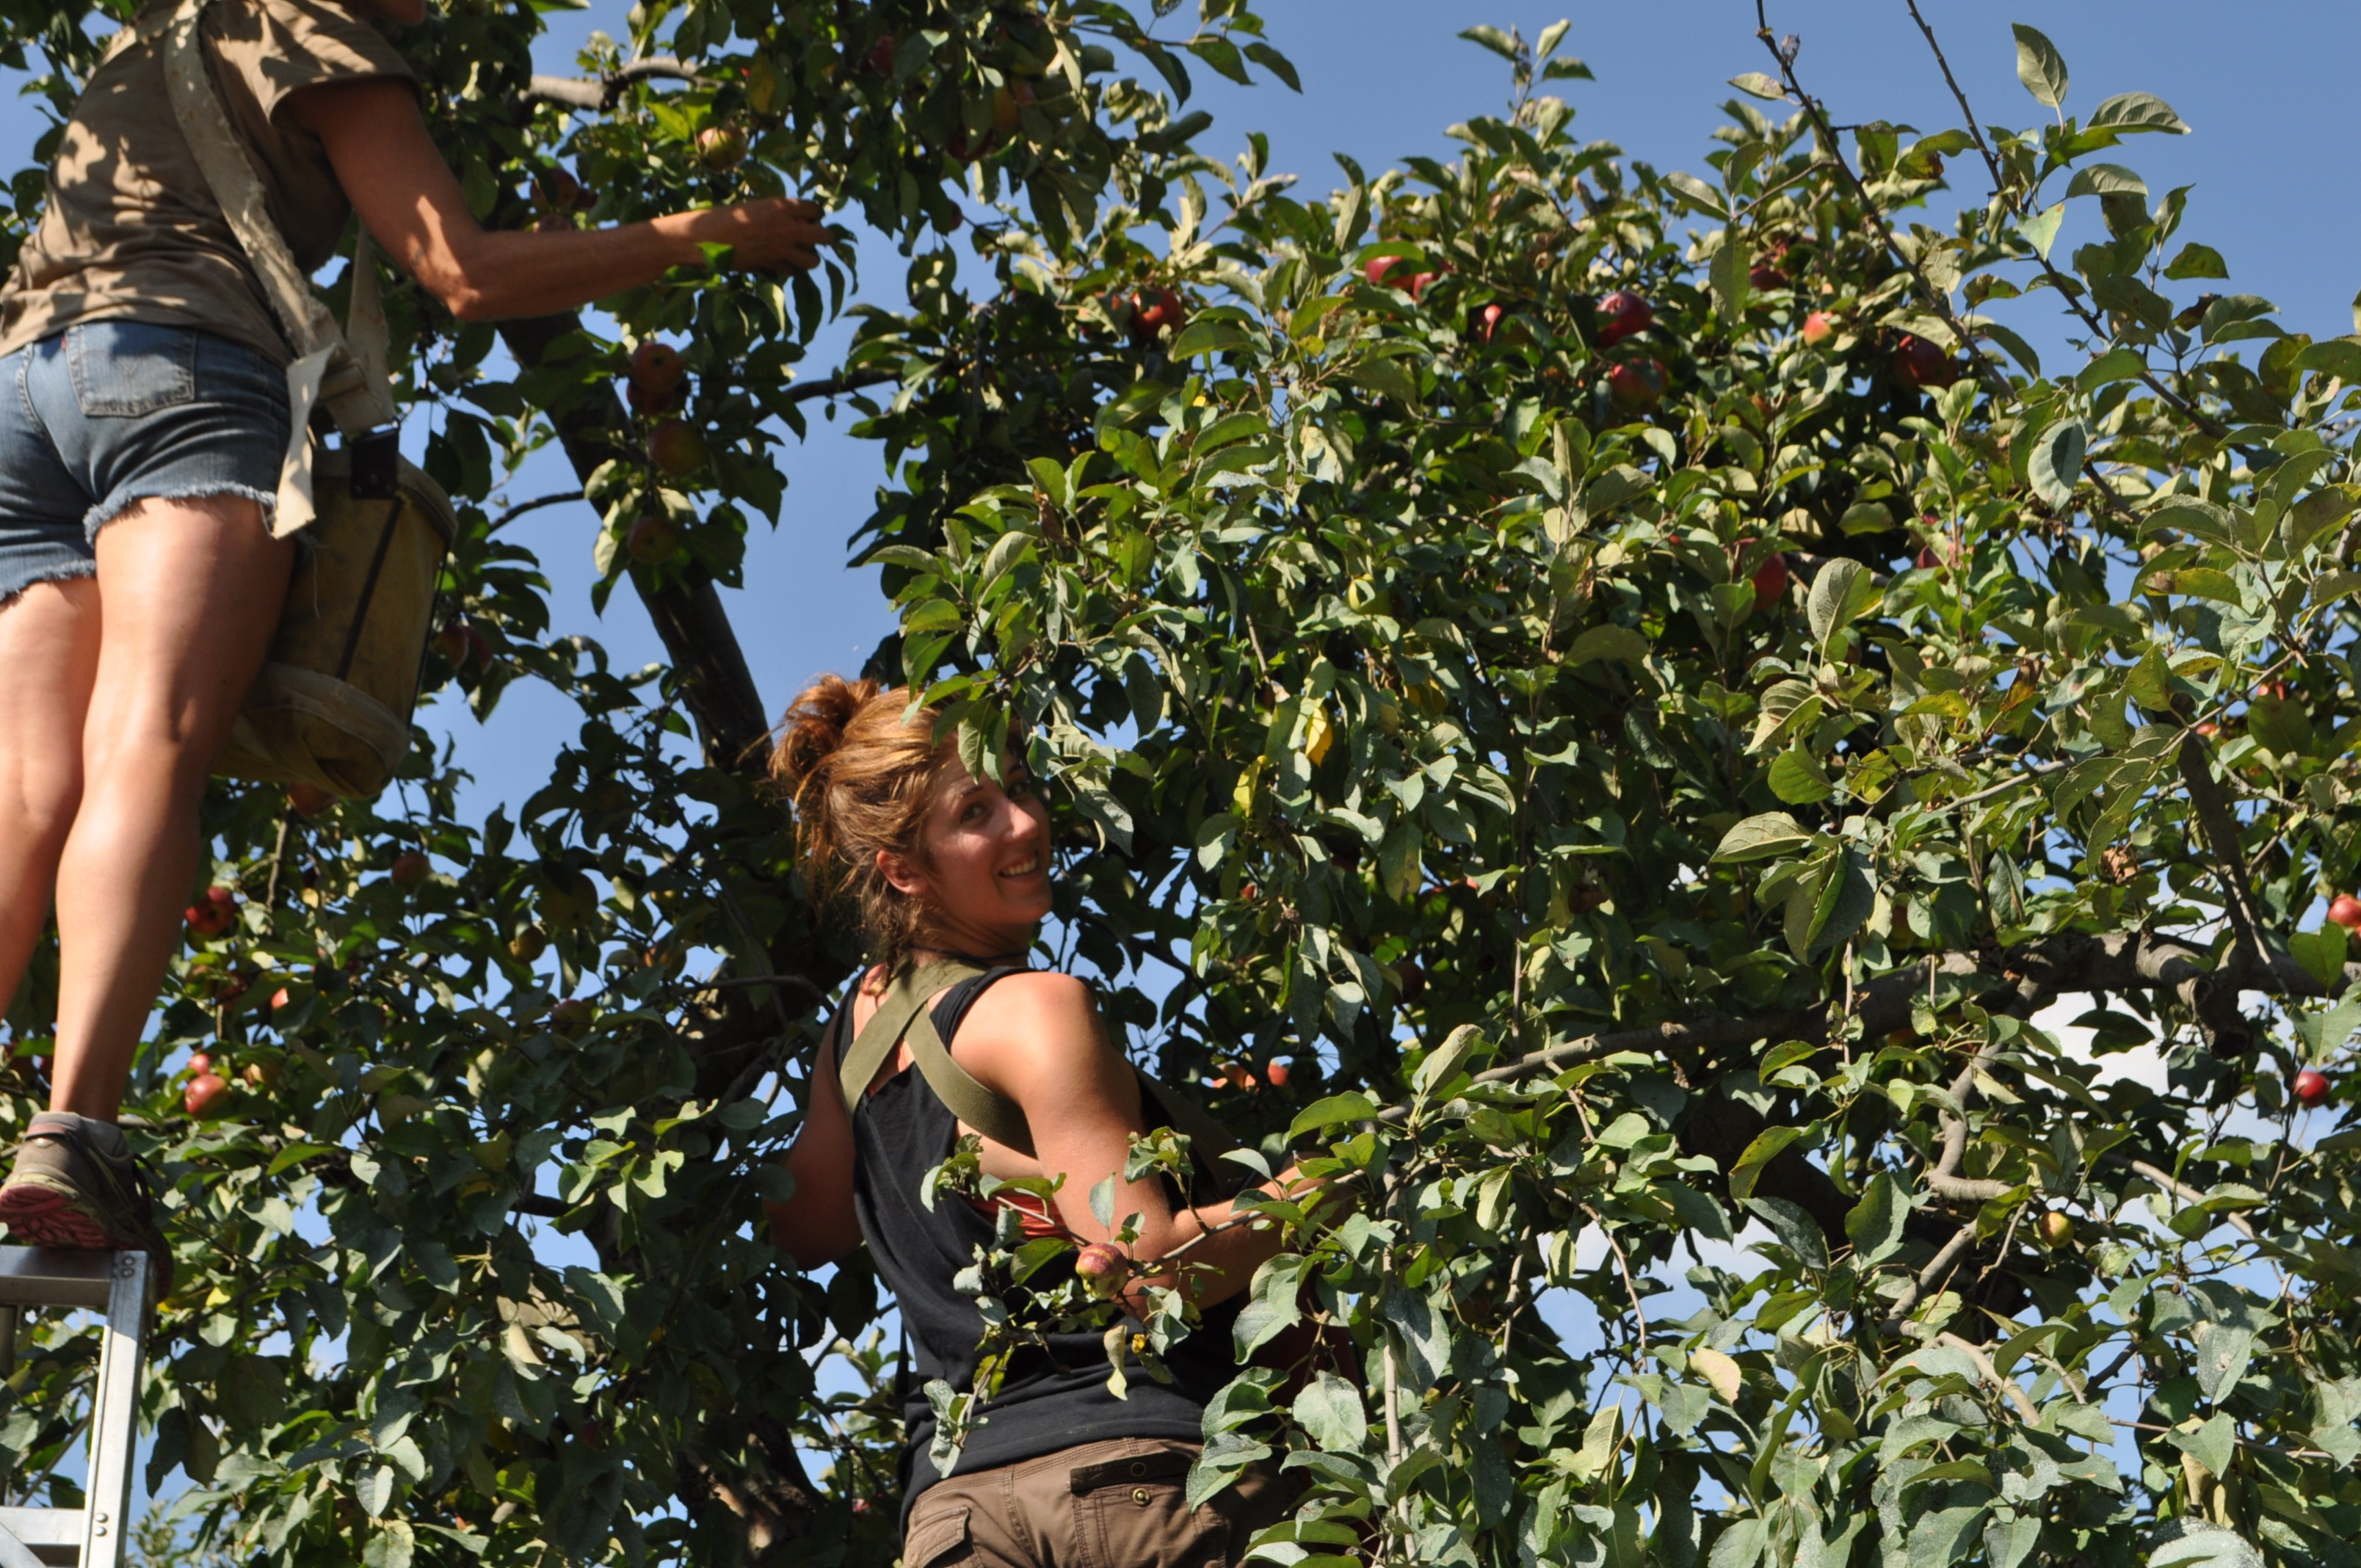 Gwen, Maria picking apples